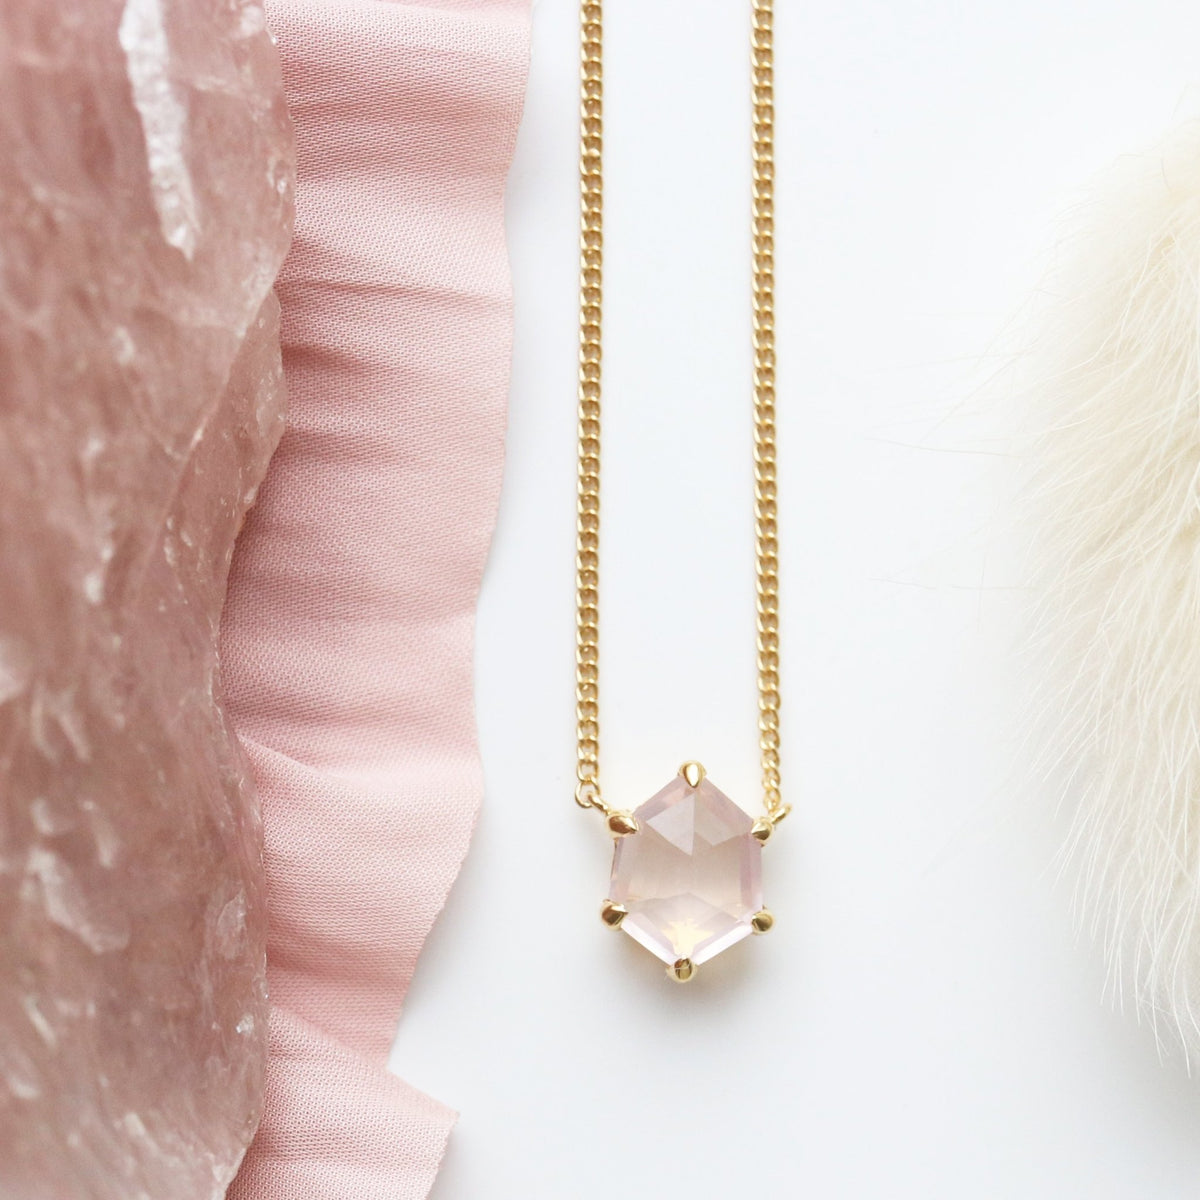 MINI HONOUR NECKLACE - PINK QUARTZ & GOLD - SO PRETTY CARA COTTER